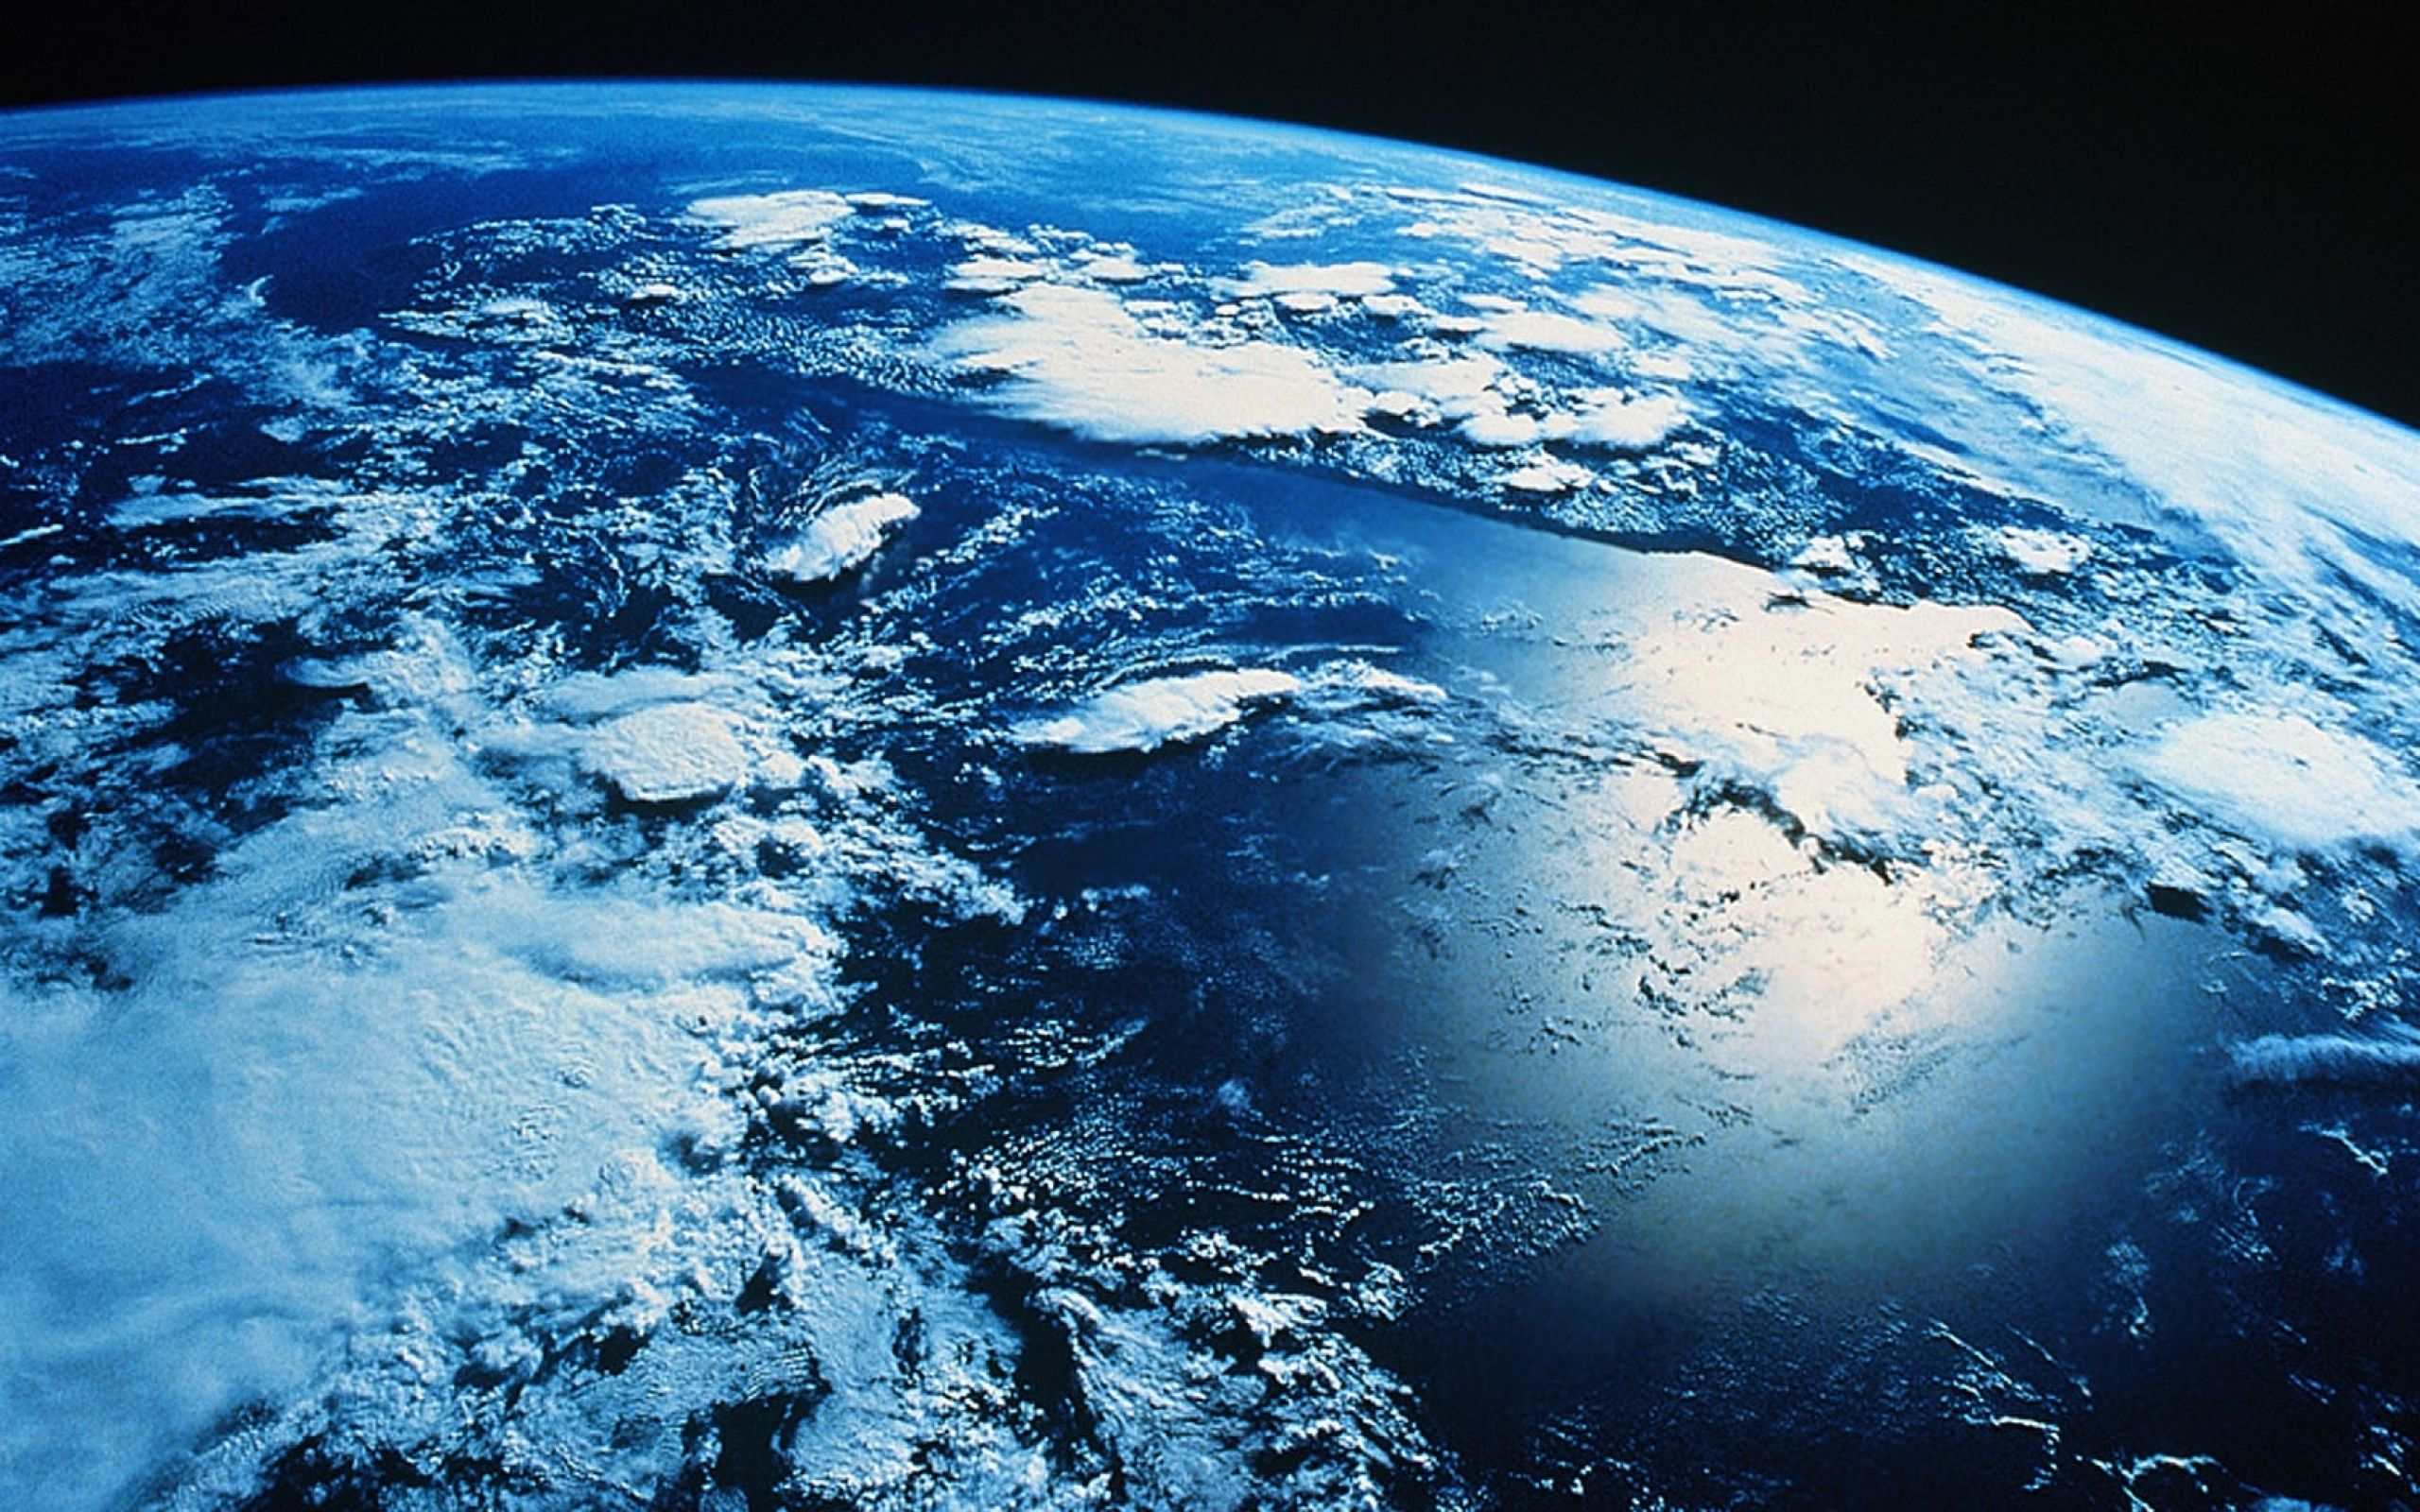 earth planet nature planets habakkuk clouds low resolution hand word end